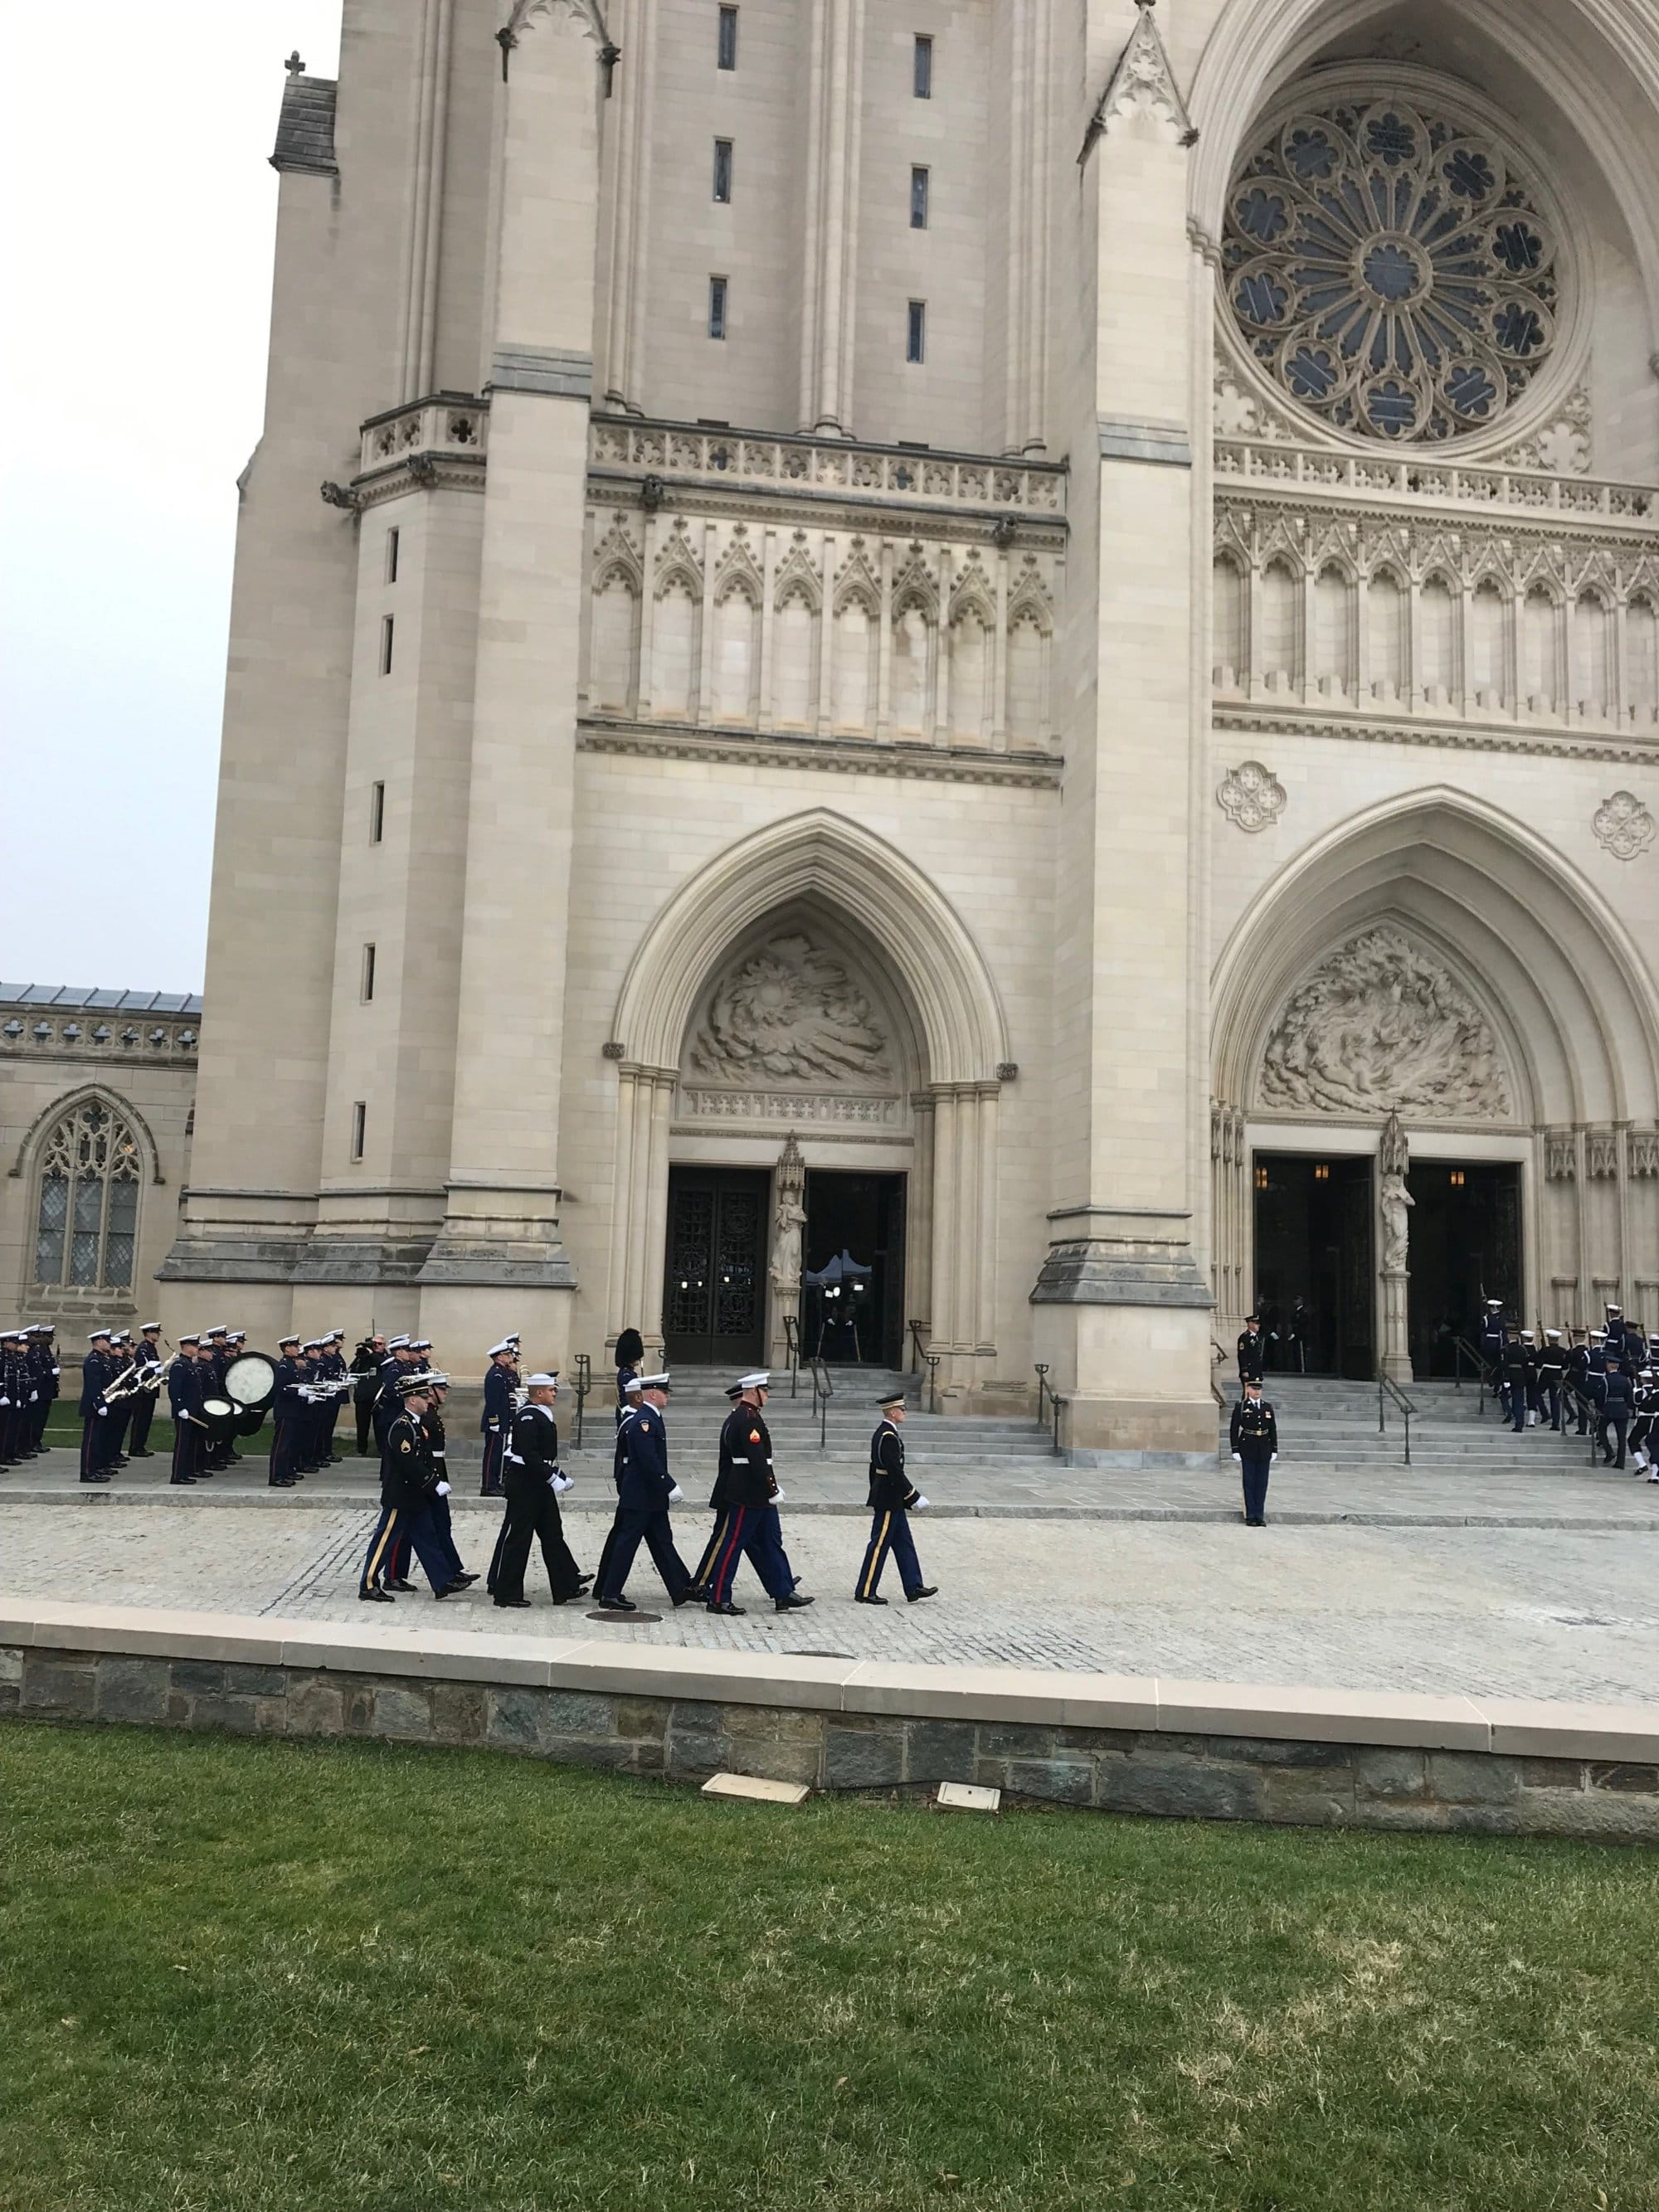 Military personnel get in place for the state funeral of former President George H.W. Bush. (WTOP/Mitchell Miller)